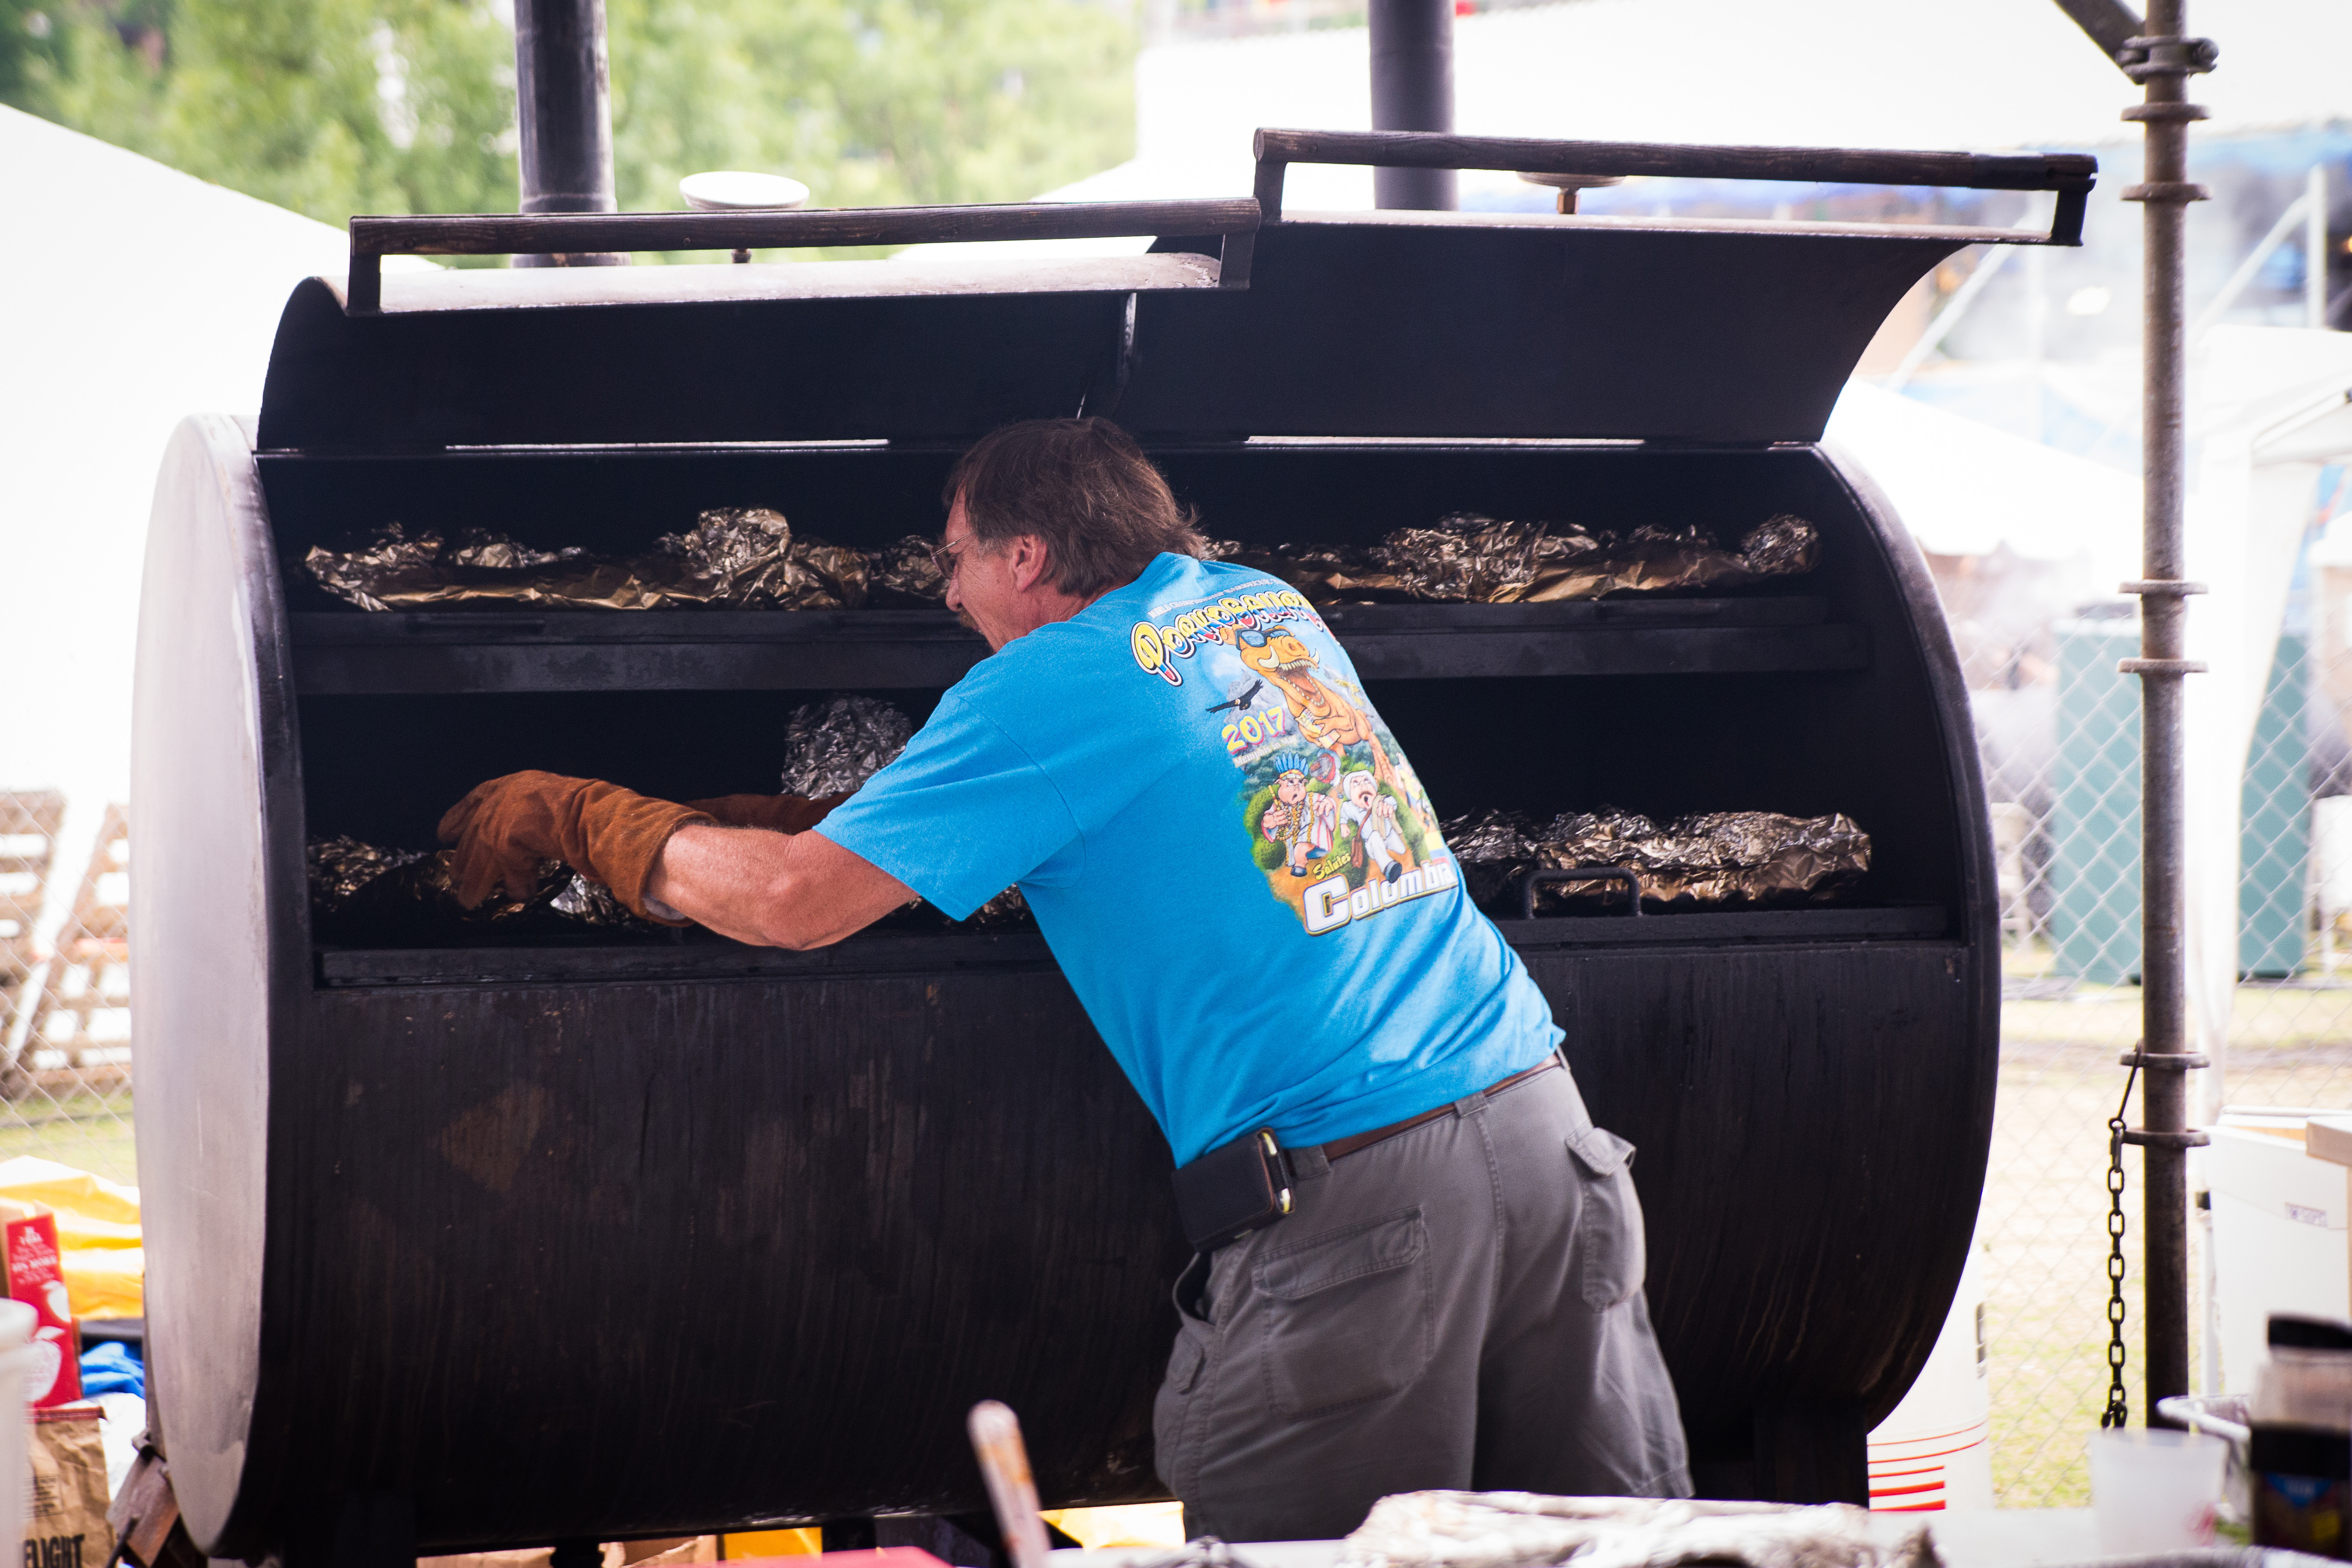 Cooking Ribs on the Pit WCBCC